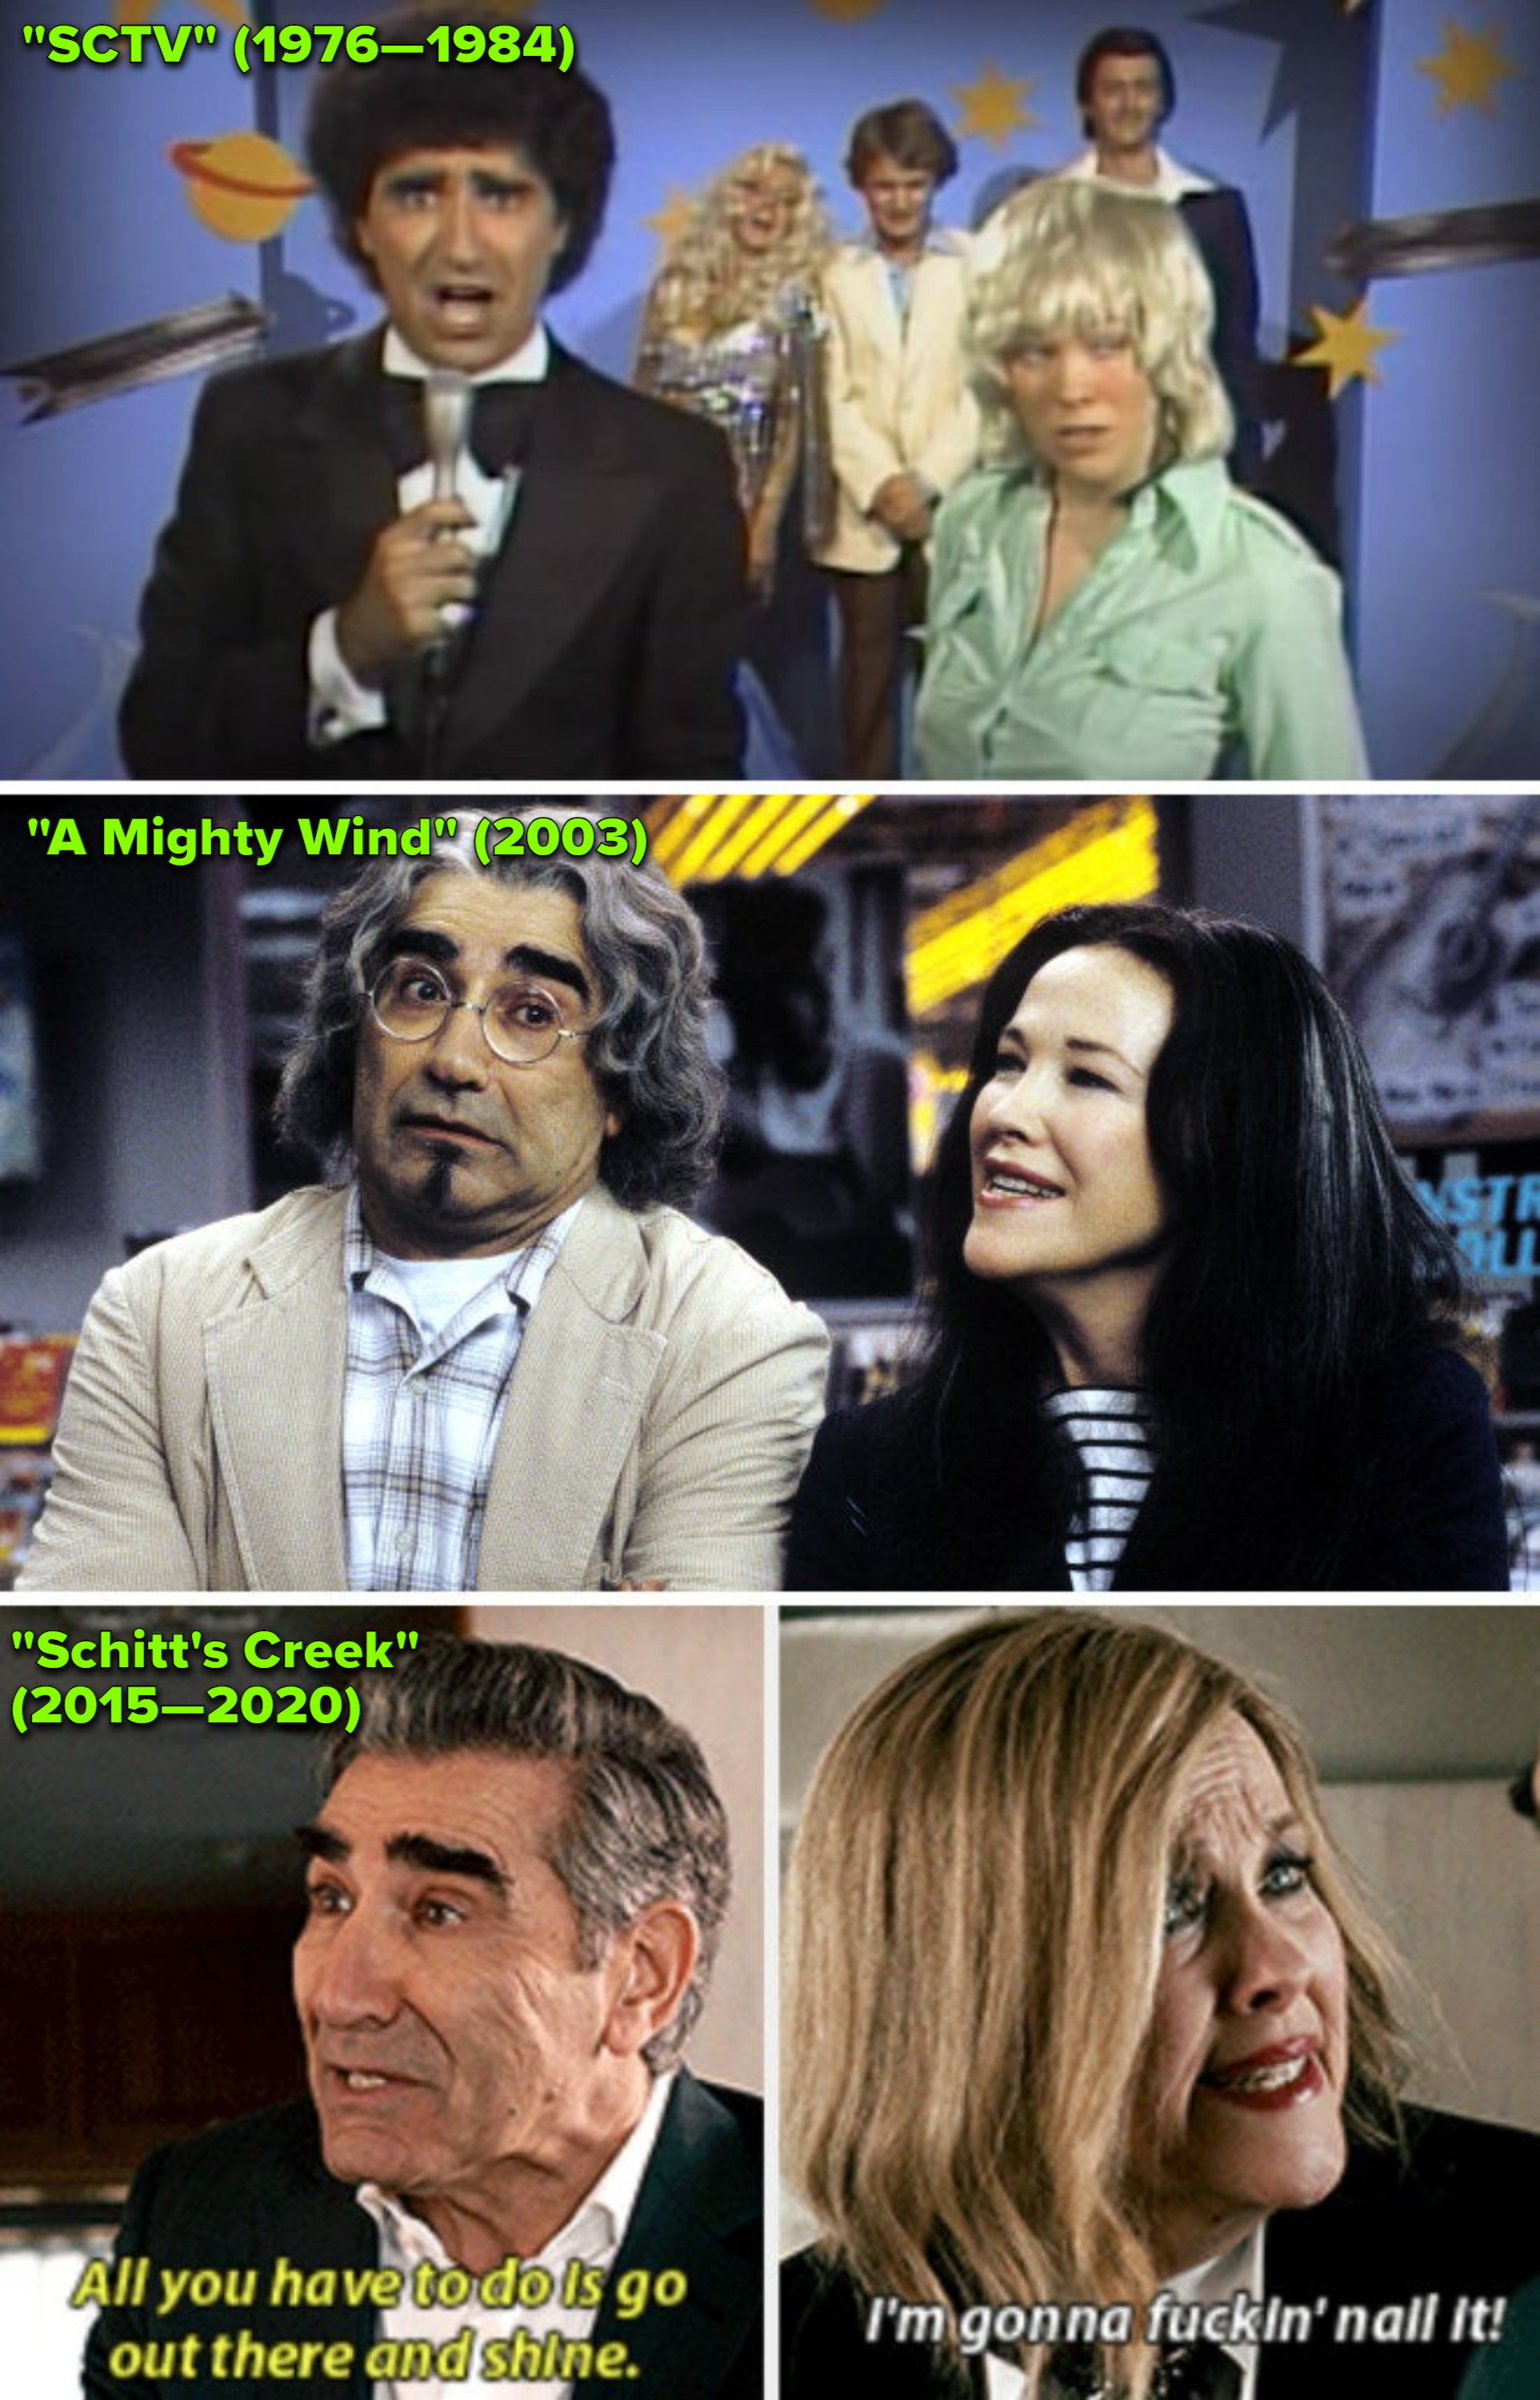 """O'Hara and Levy on """"SCTVl;"""" O'Hara and Levy in """"A Mighty Wind,"""" and O'Hara and Levy in """"Schitt's Creek"""""""